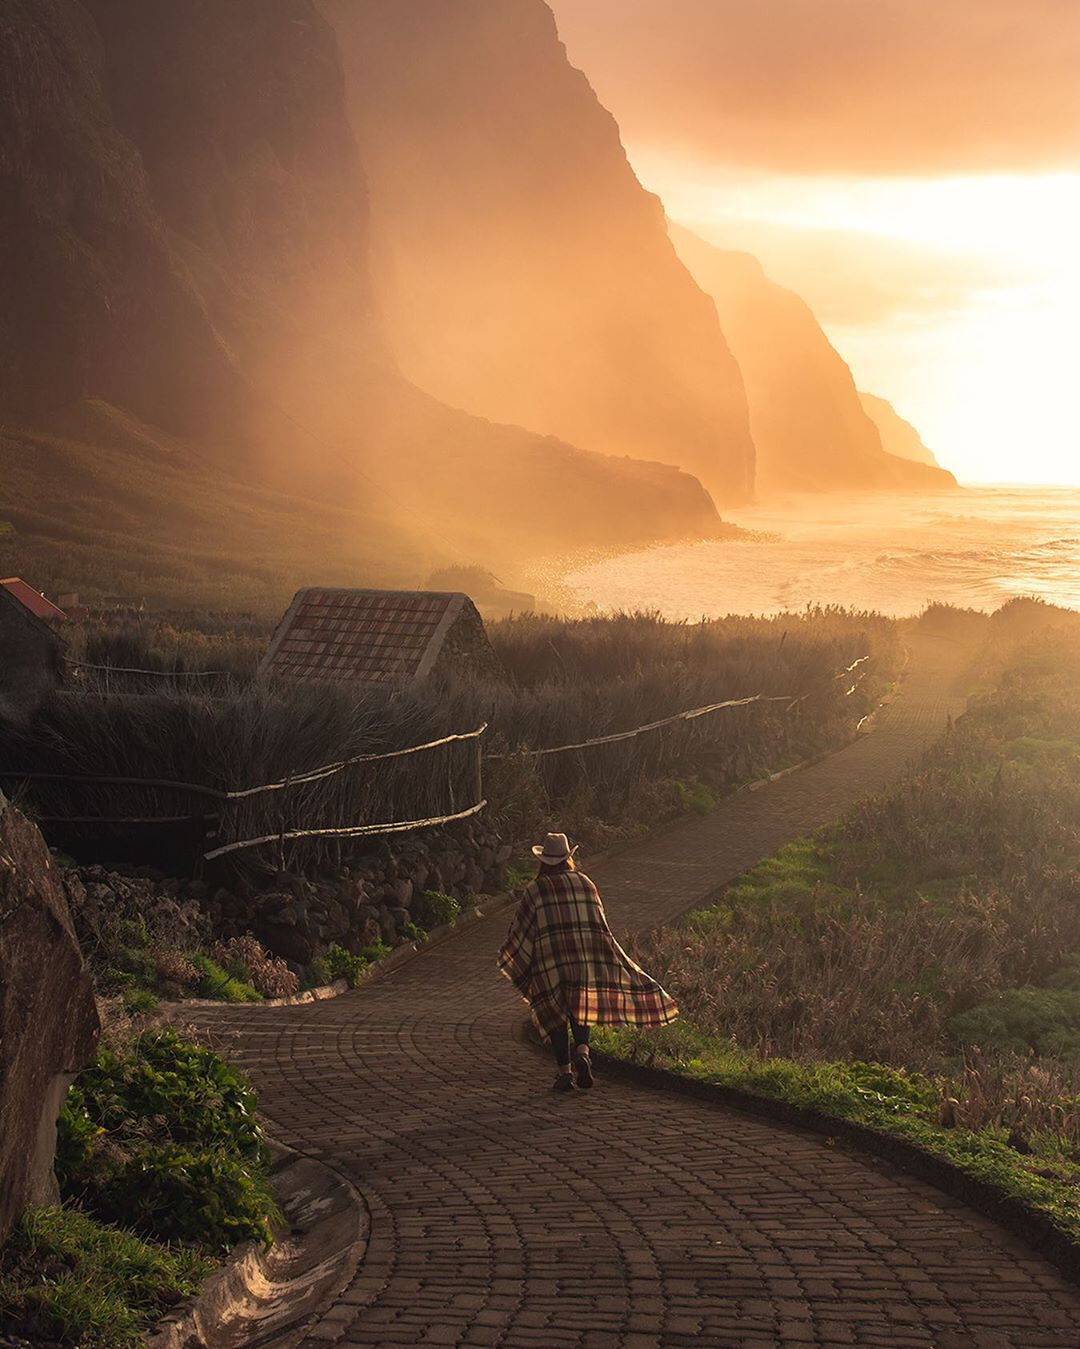 Madeira and its magical sunsets 🌅  Photo: @twofindaway  #Madeira #View https://t.co/6vj8ejuaeb